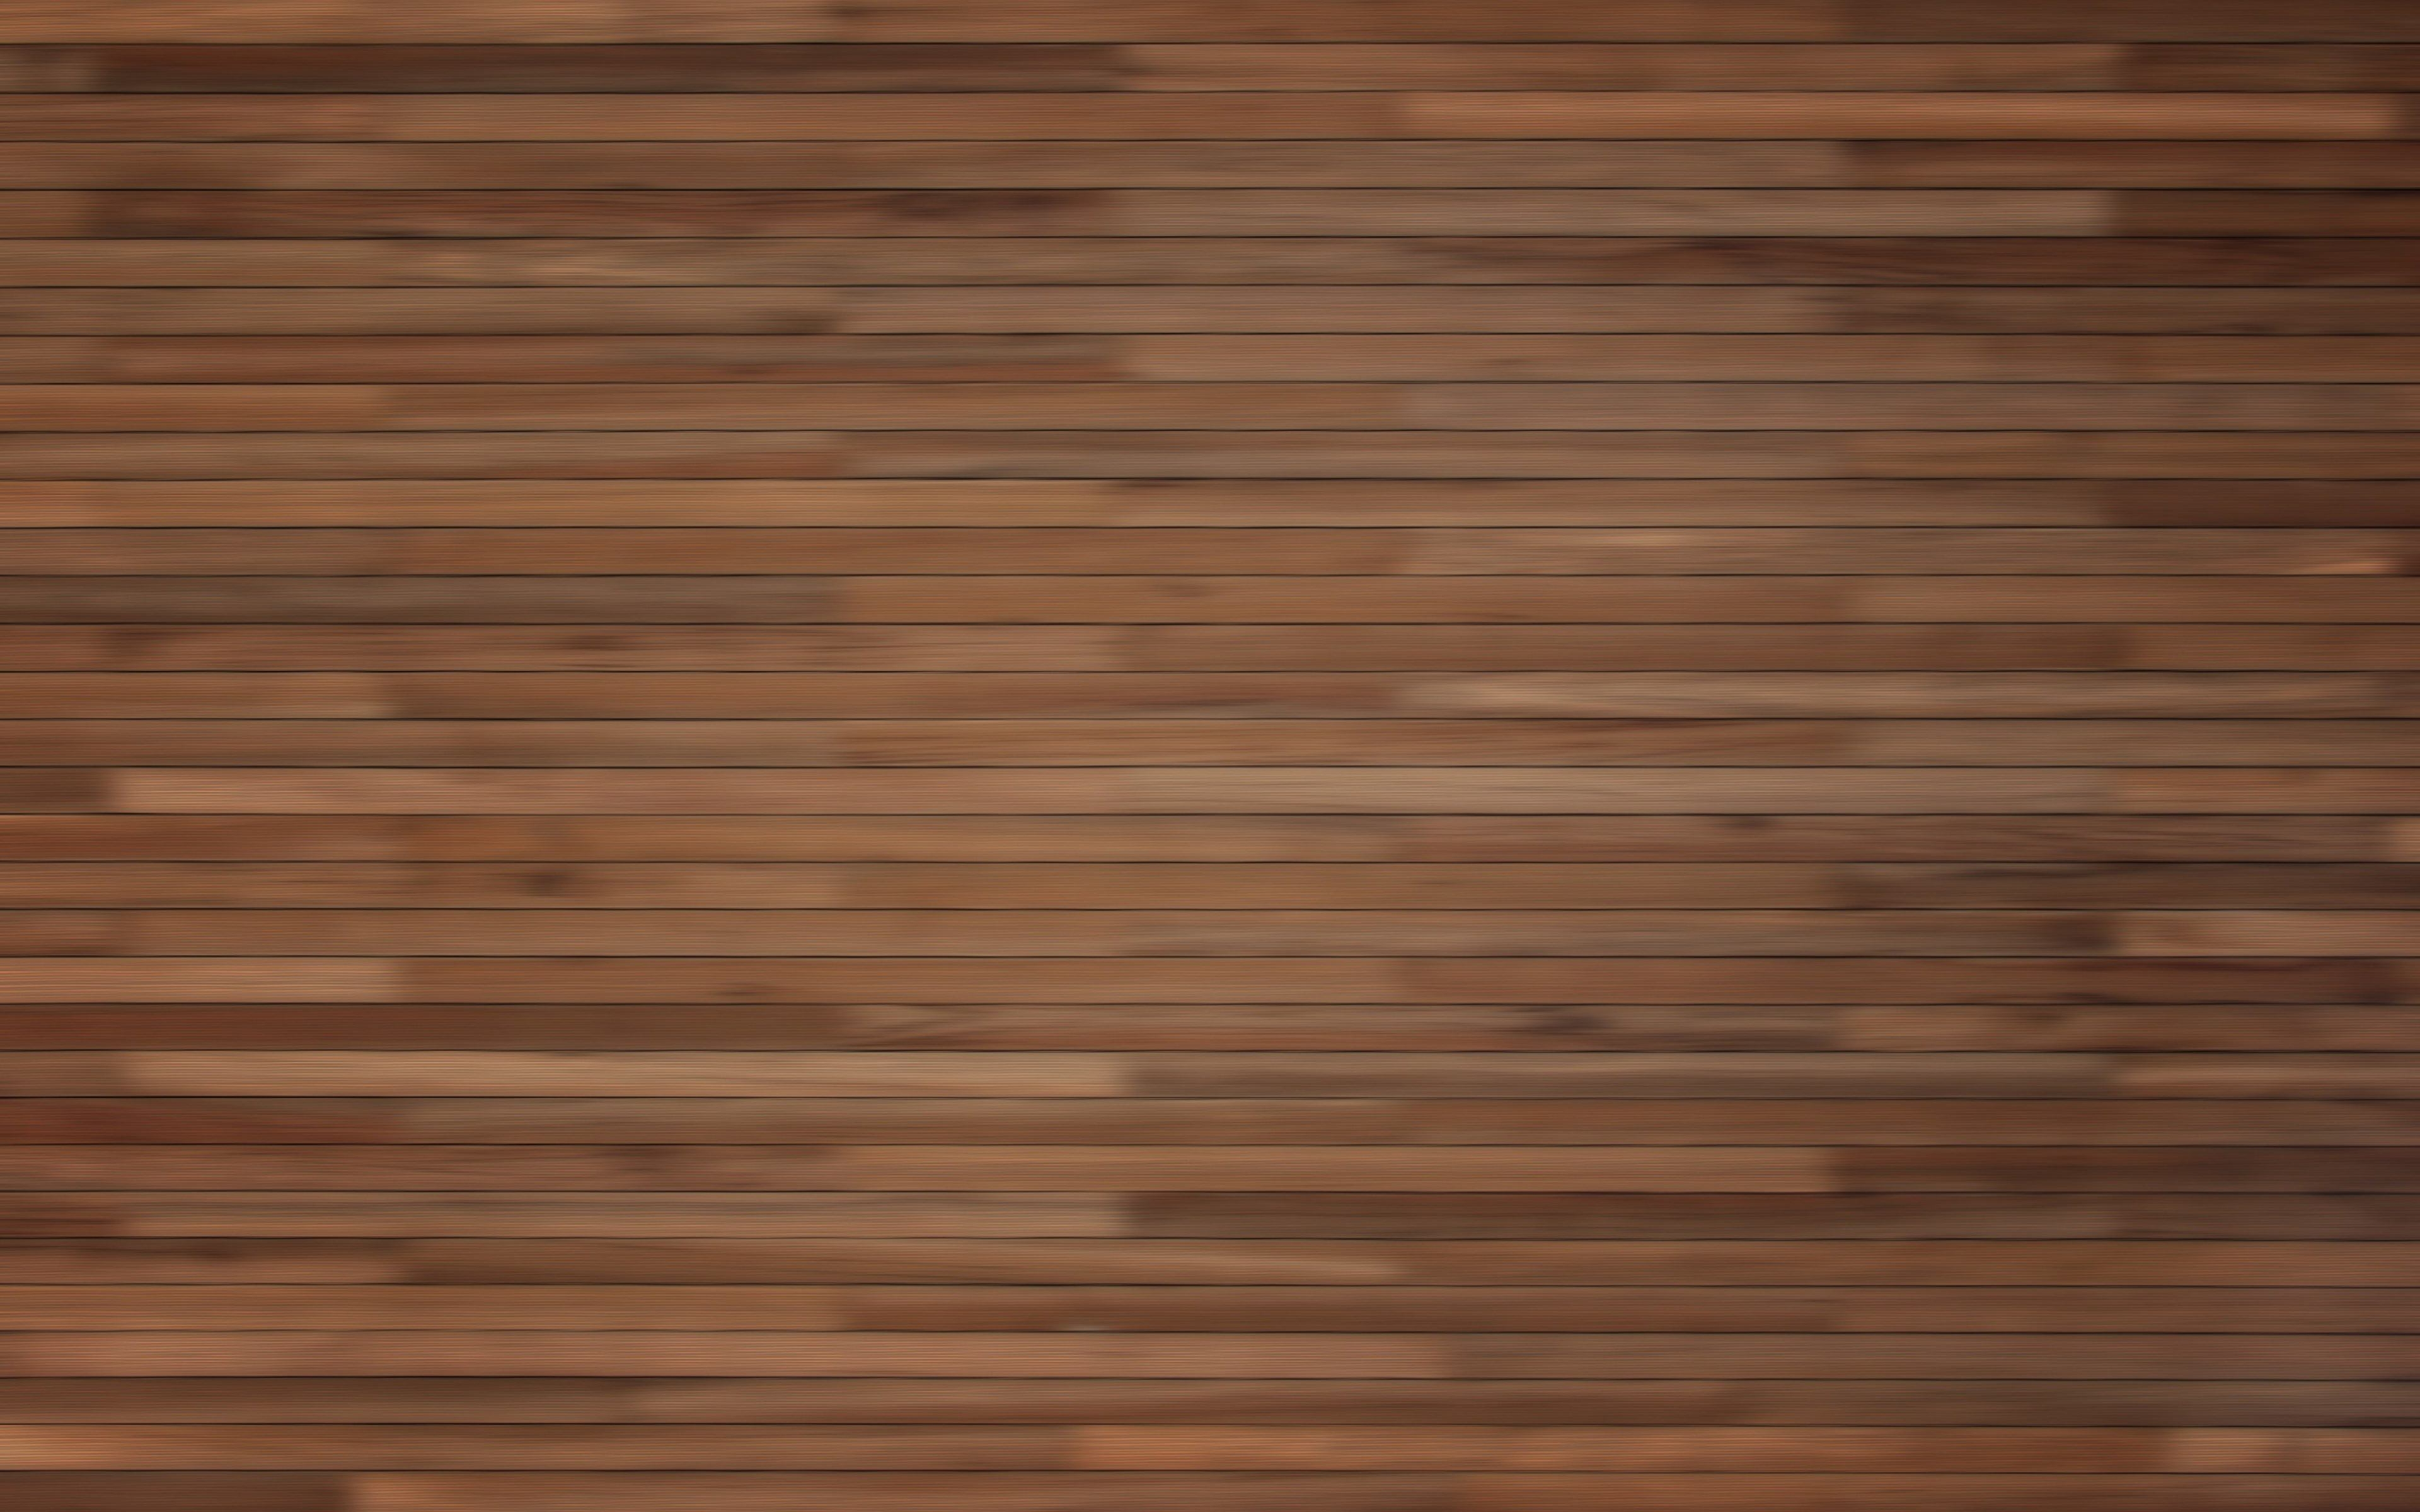 Wood Plank Wallpaper Background